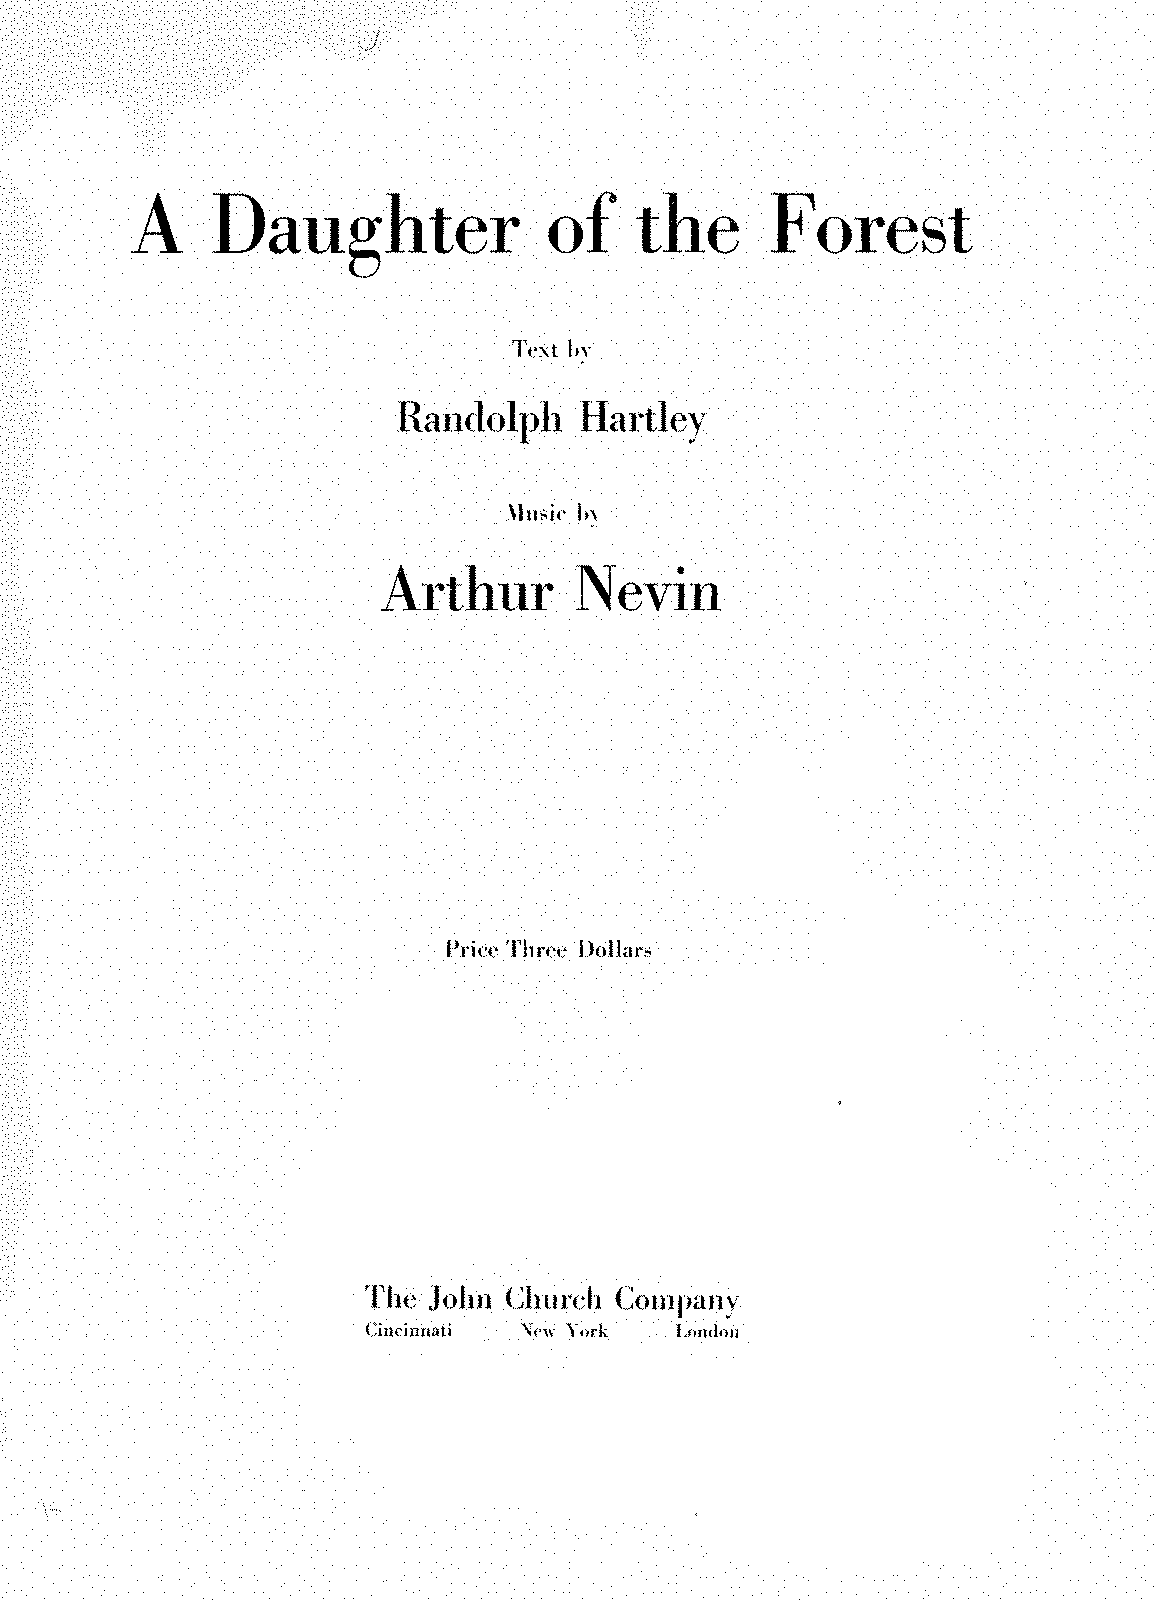 PMLP290742-Nevin - Daughter of the Forest VS IArchUNC.pdf